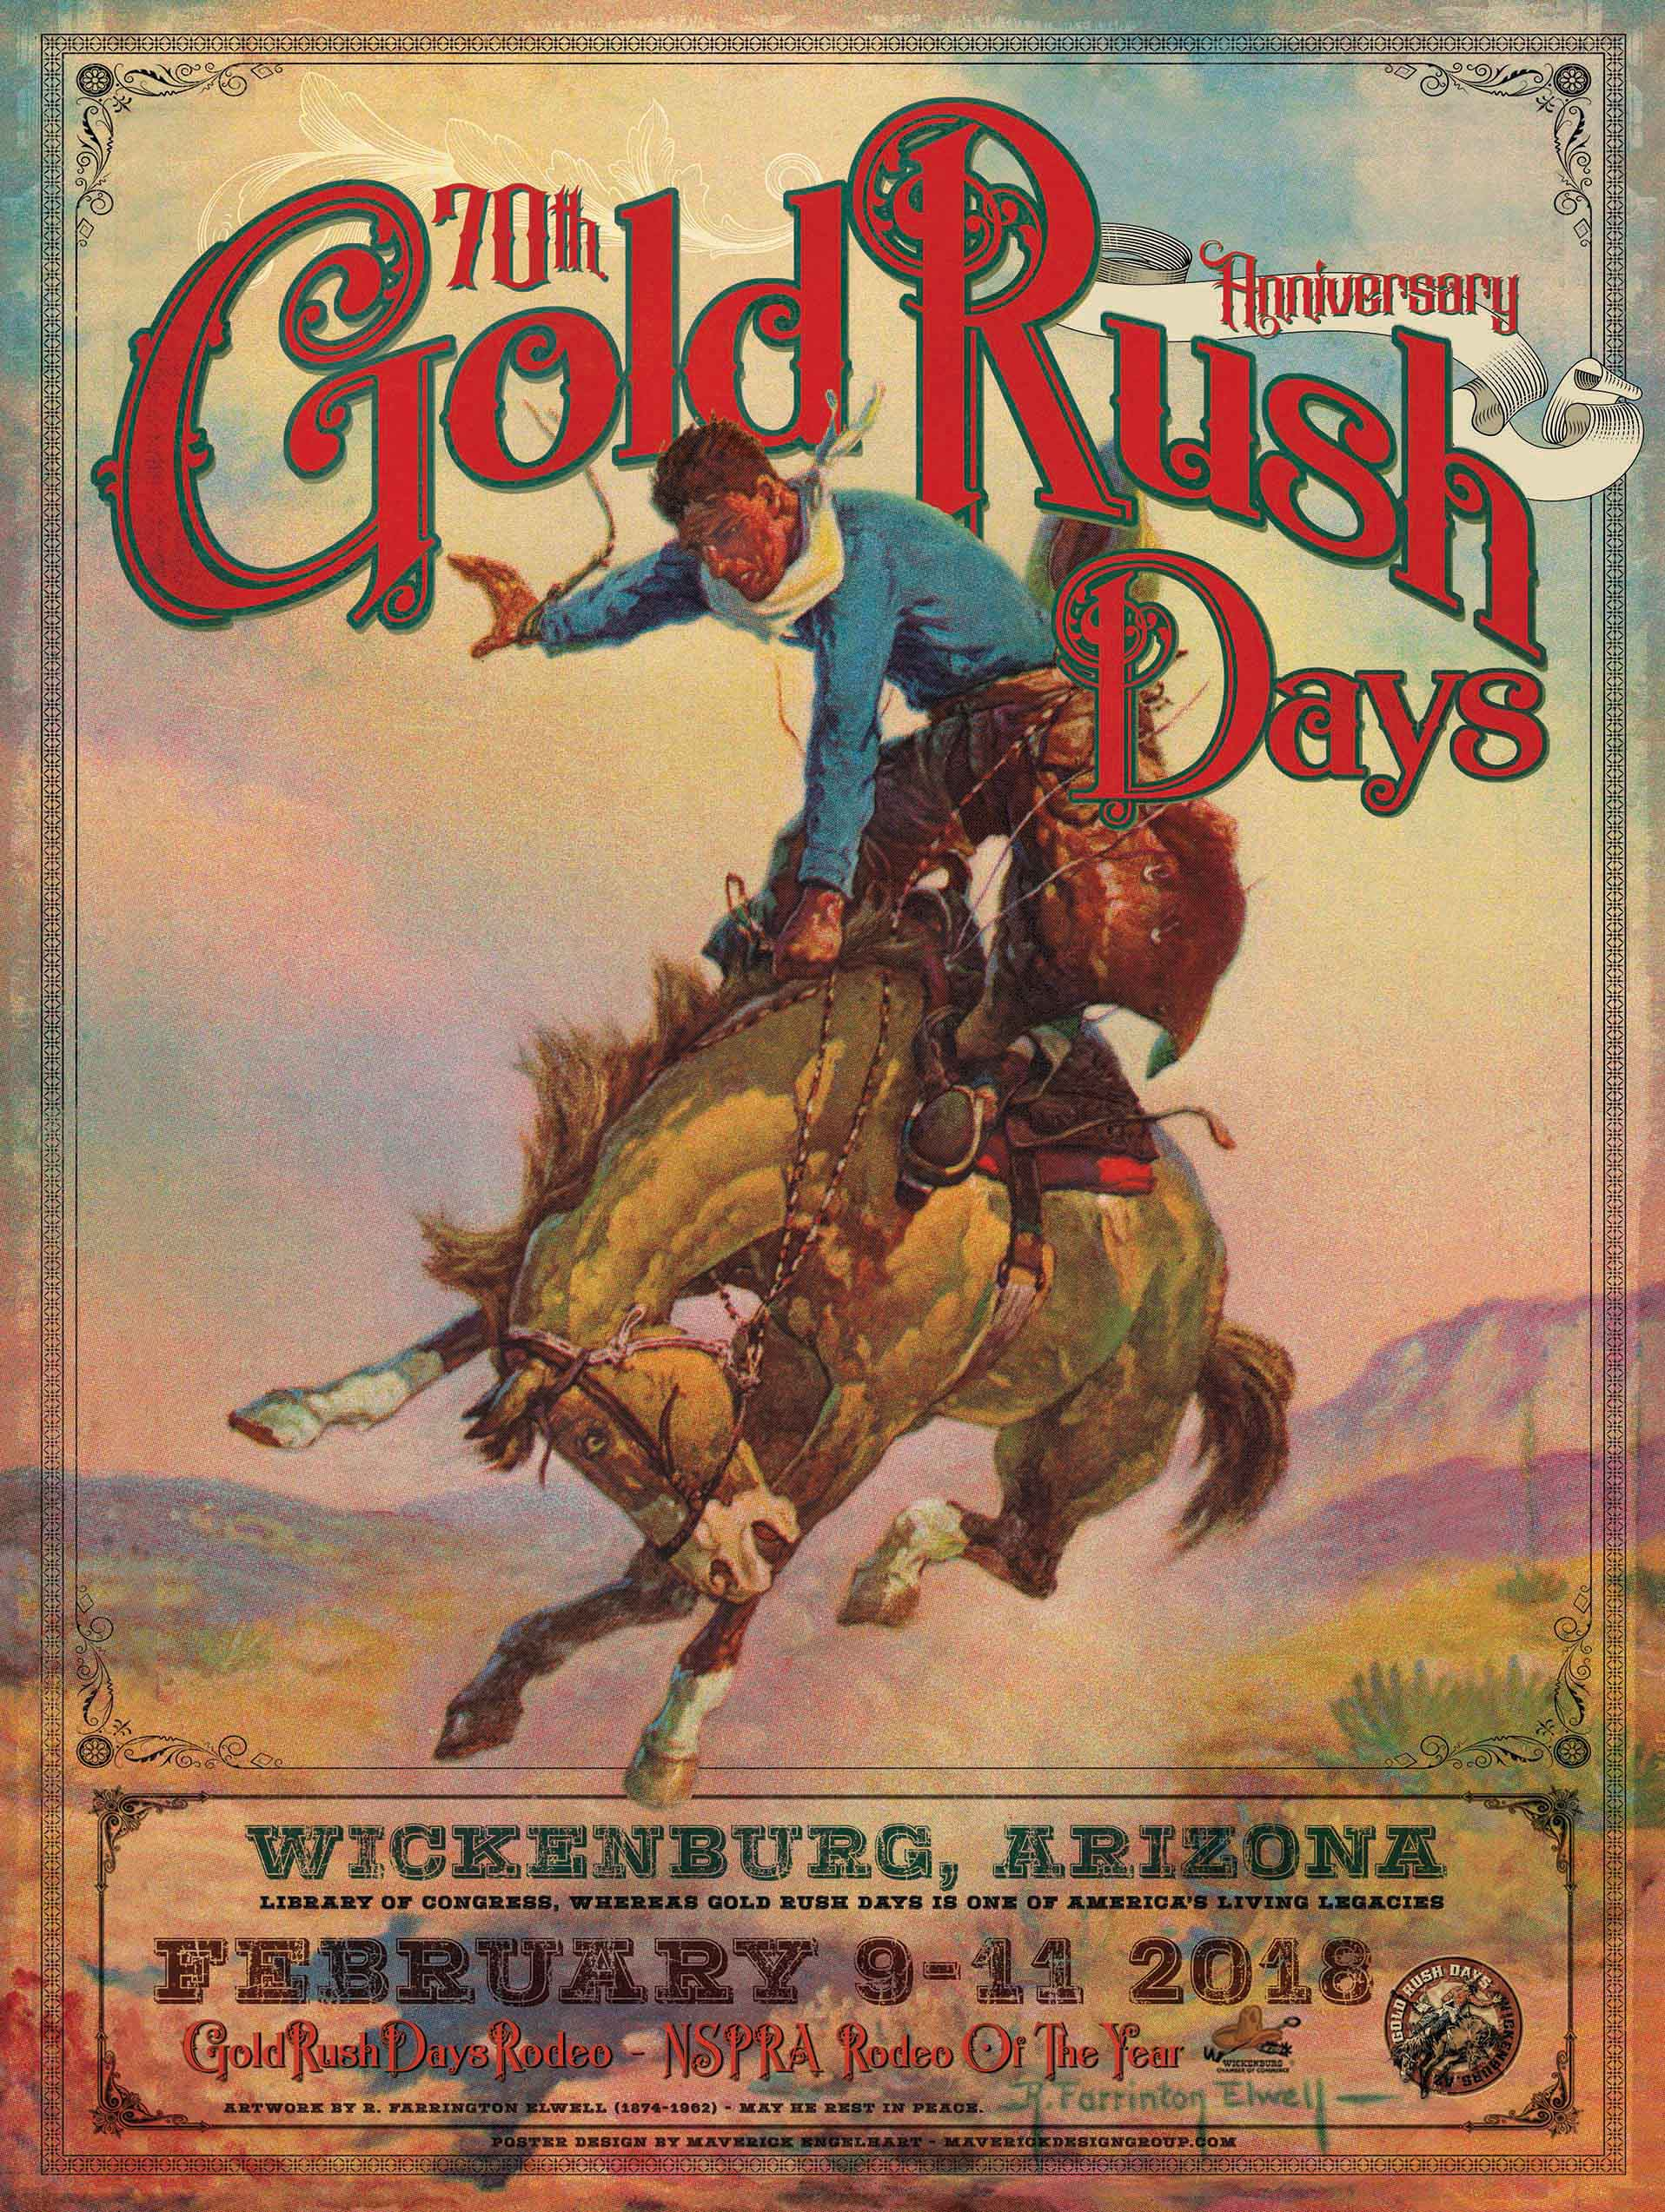 70th Anniversary Gold Rush Days Poster for Wickenburg, Arizona